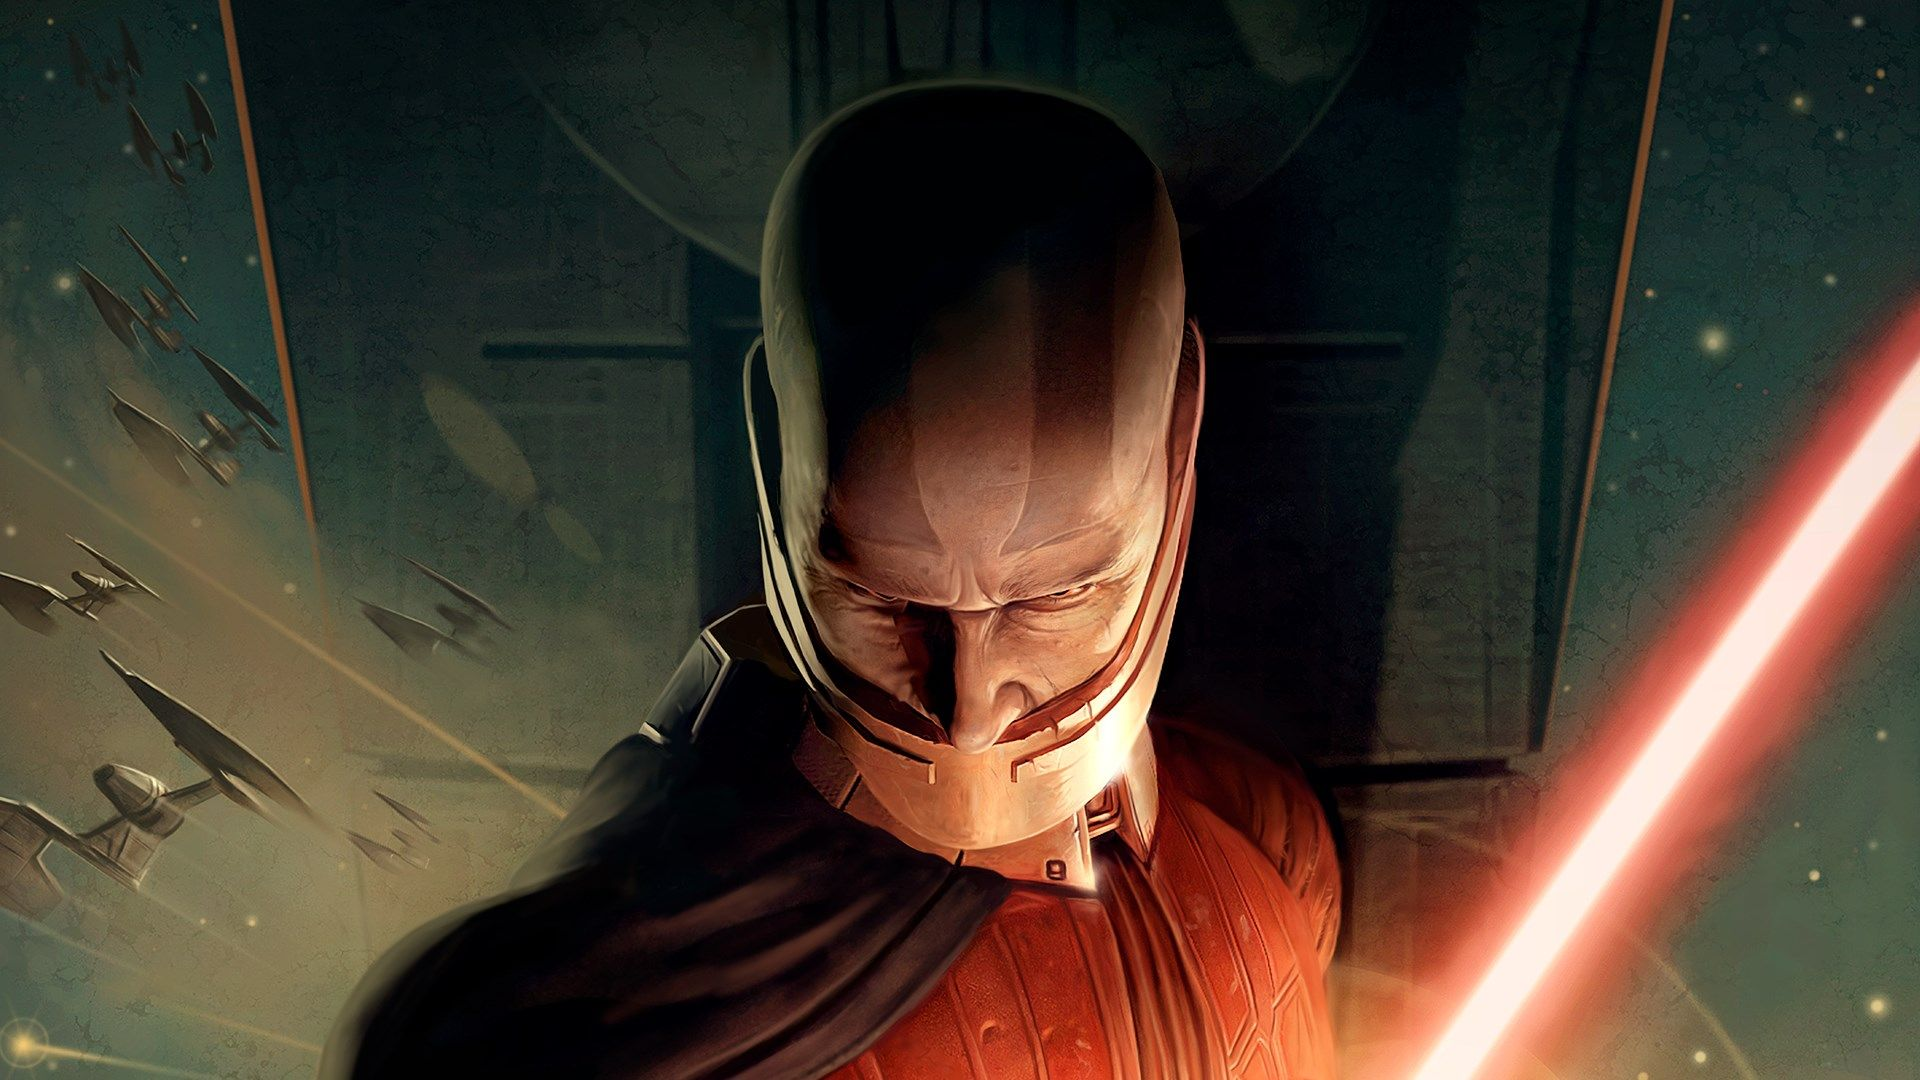 /3-best-kotor-builds-even-vader-would-approve-of-sc2537dh feature image